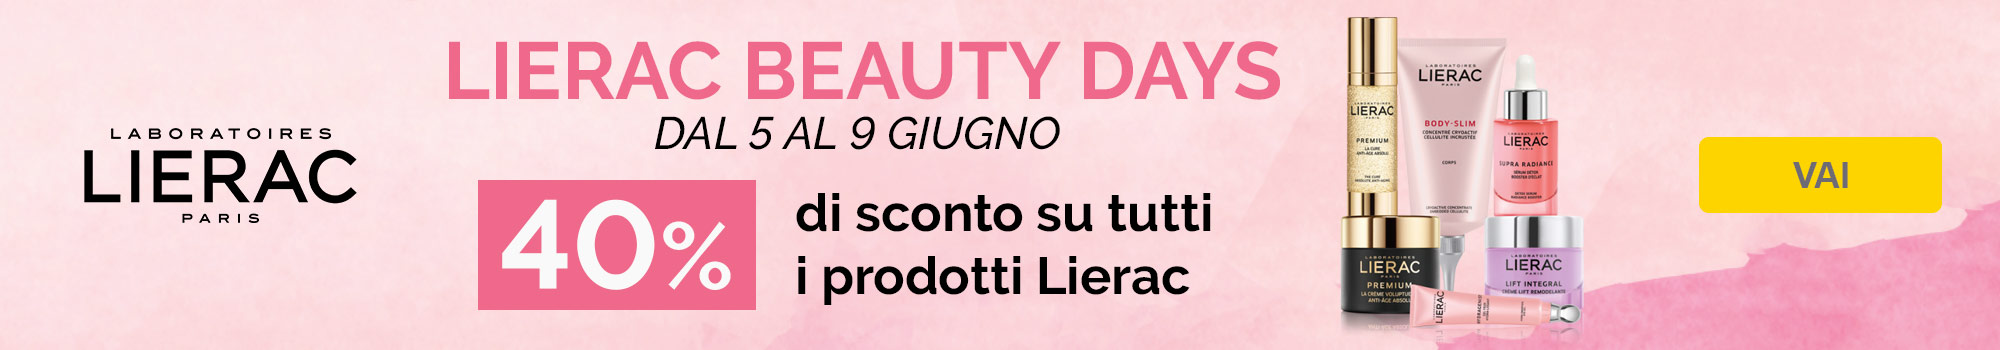 Lierac Beauty Days